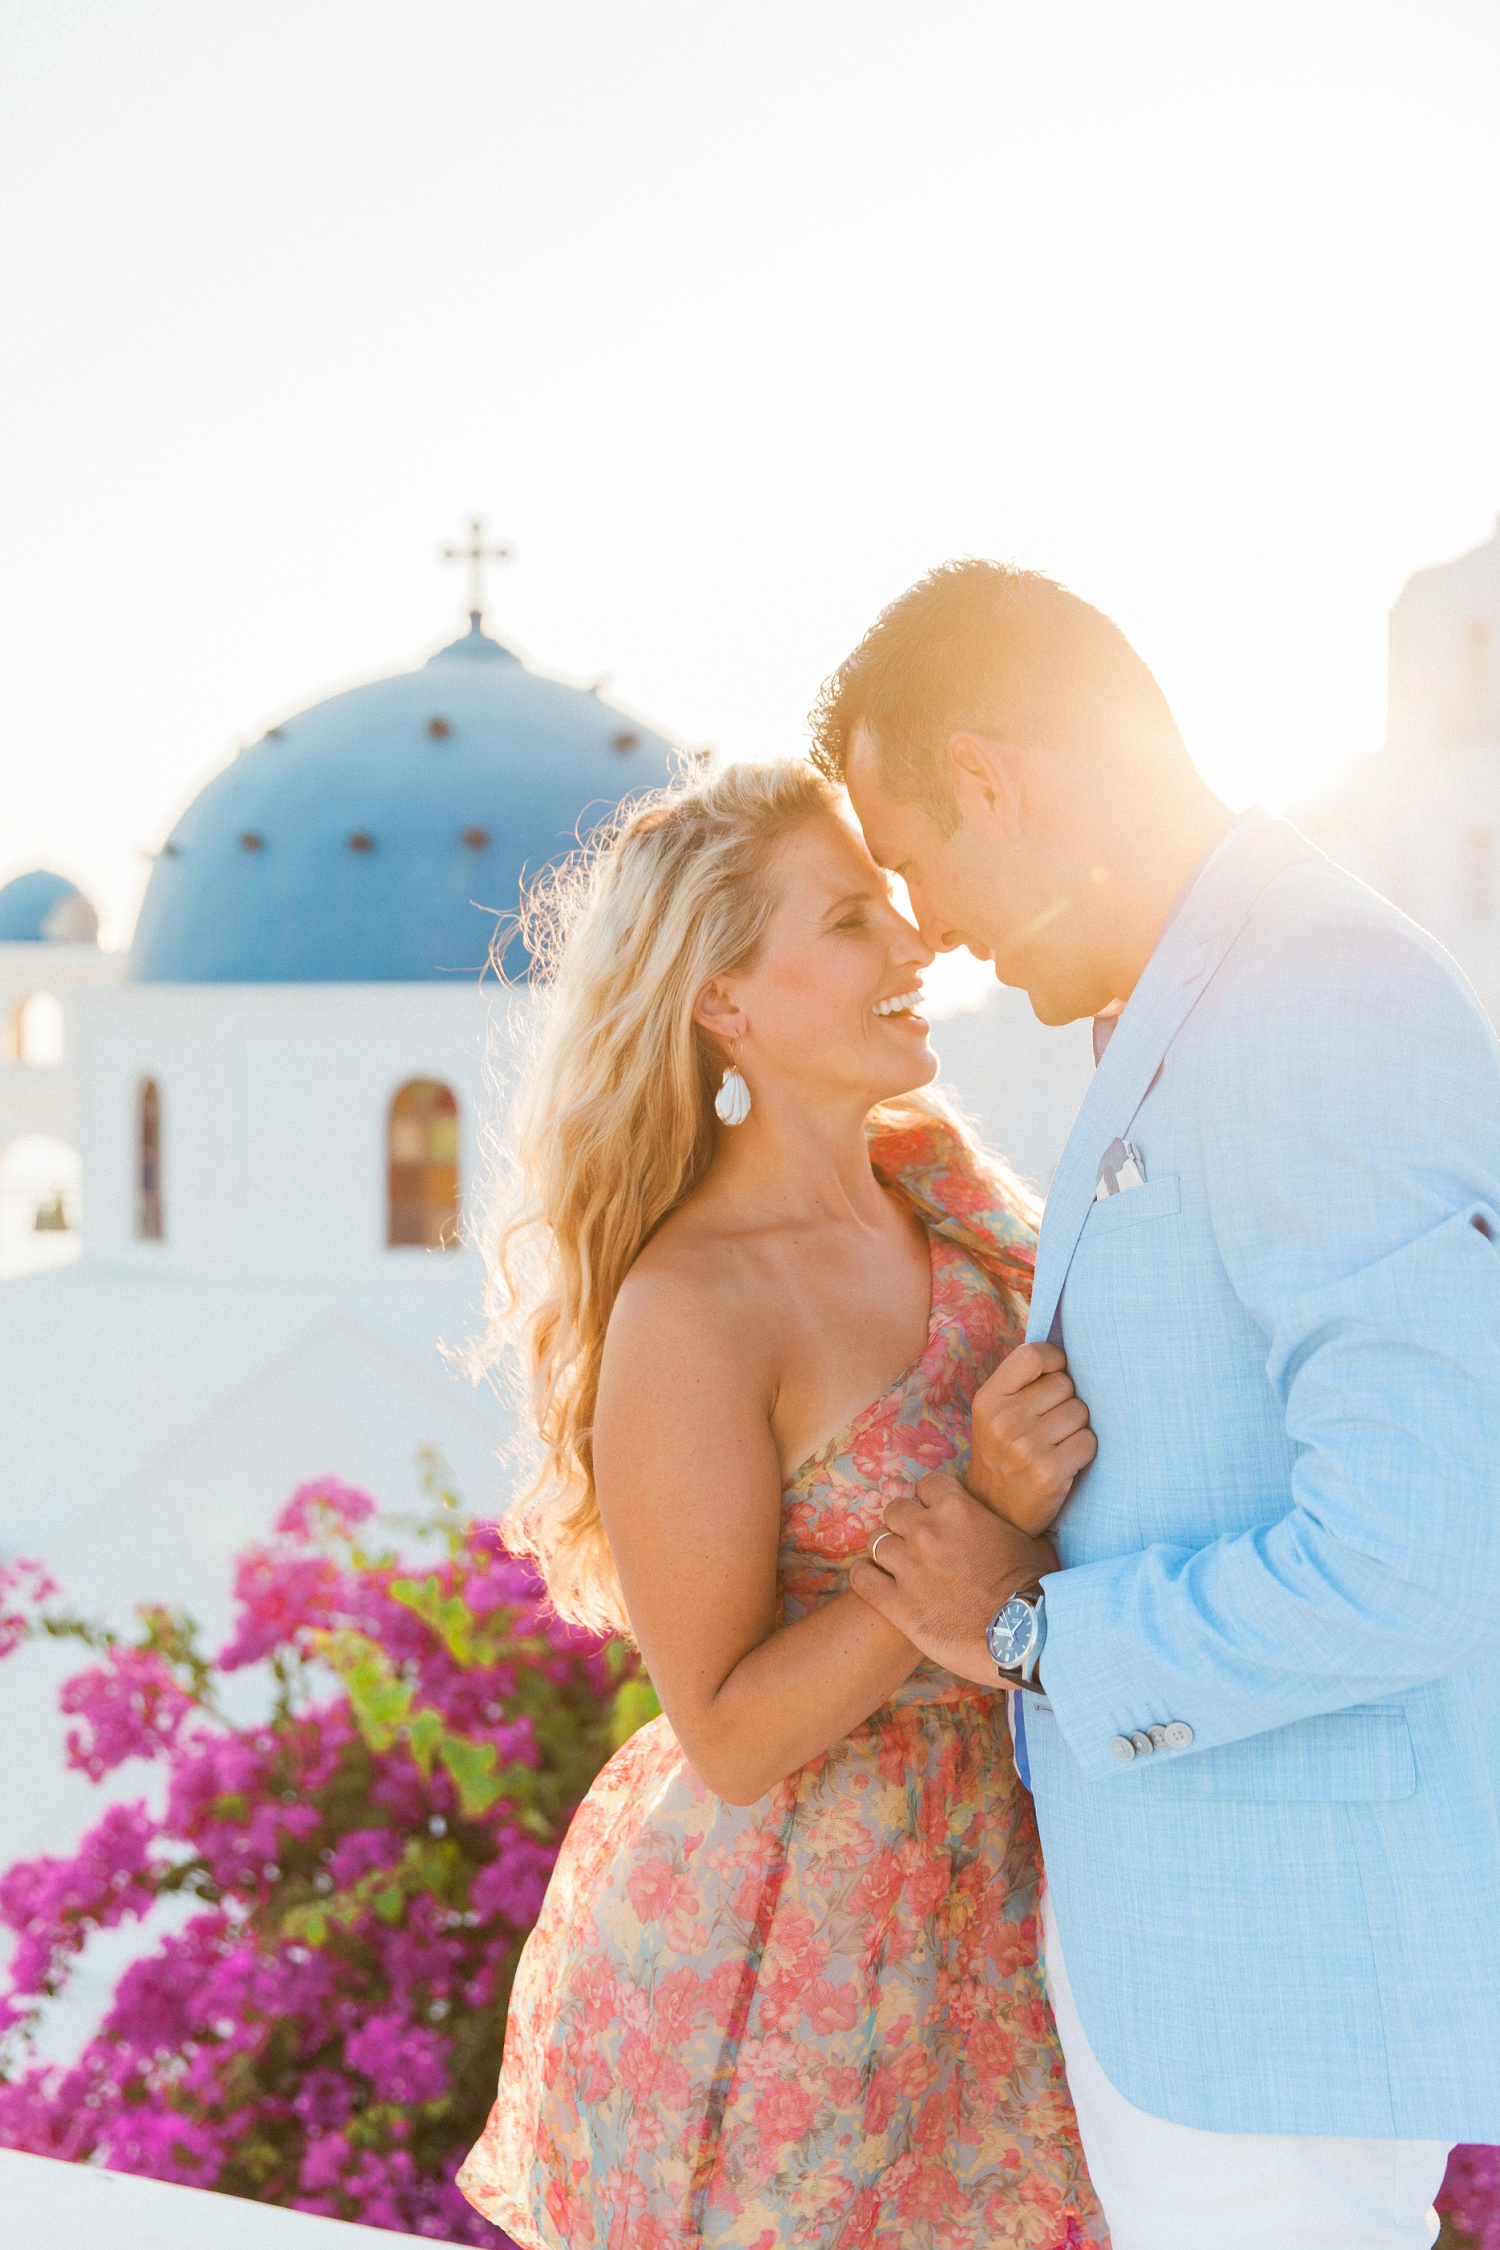 Sunset portraits of a couple in front of a church during their Santorini honeymoon photography session